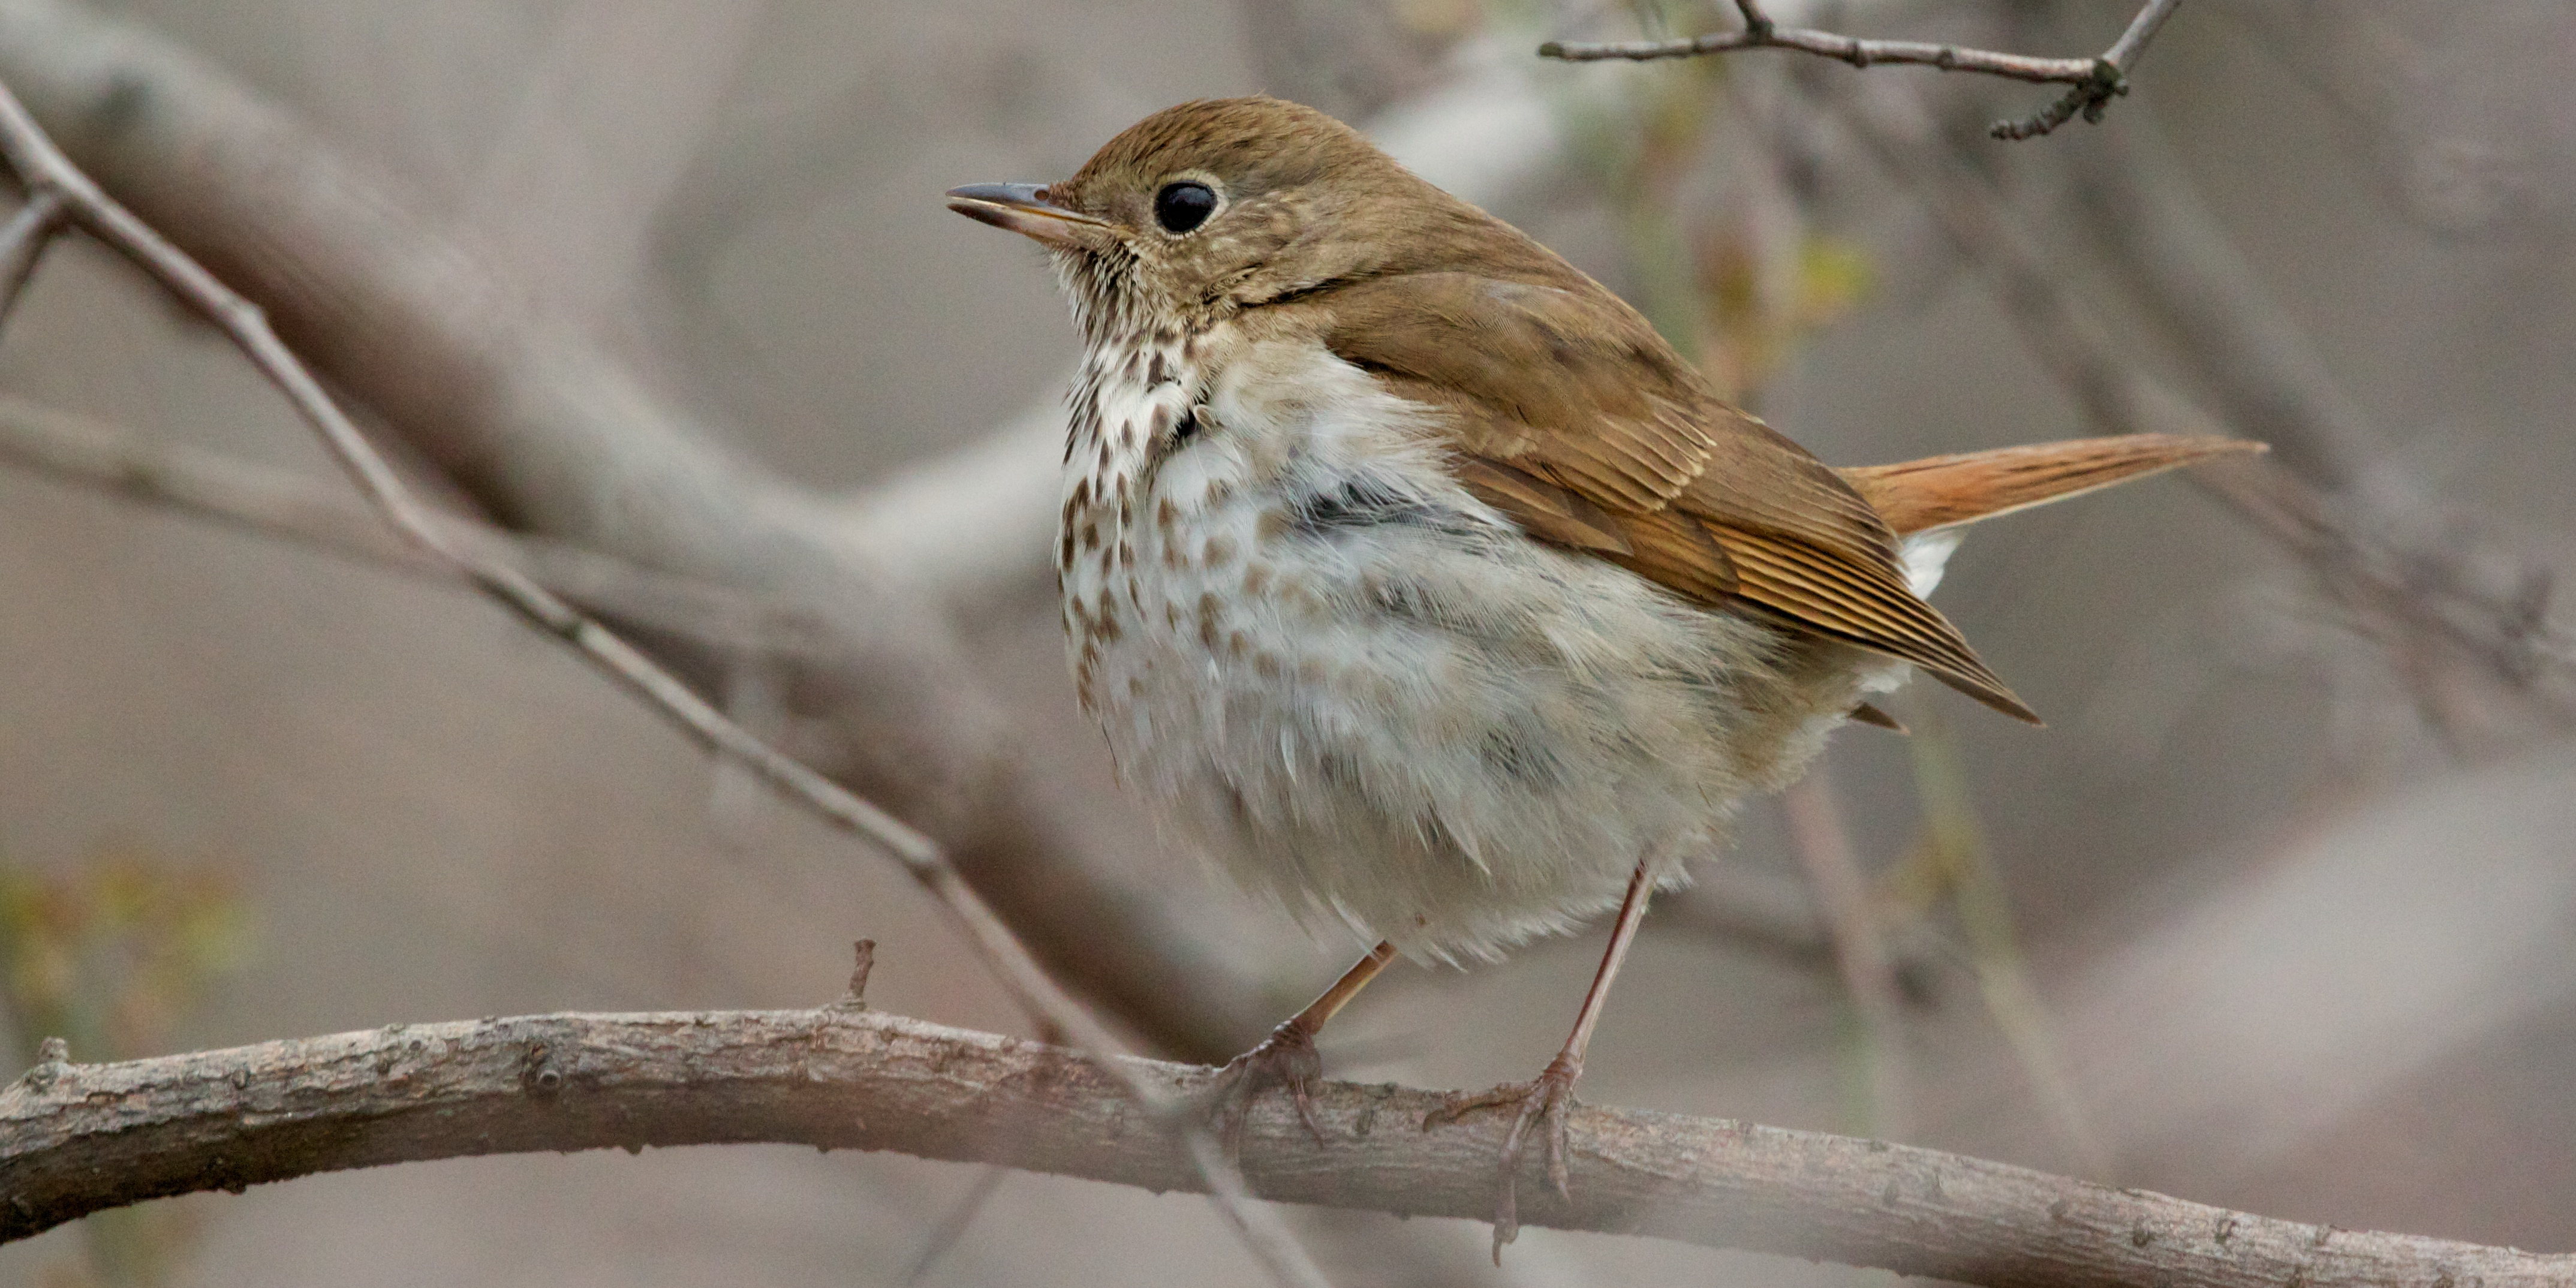 Hermit Thrush photos and wallpapers. Collection of the